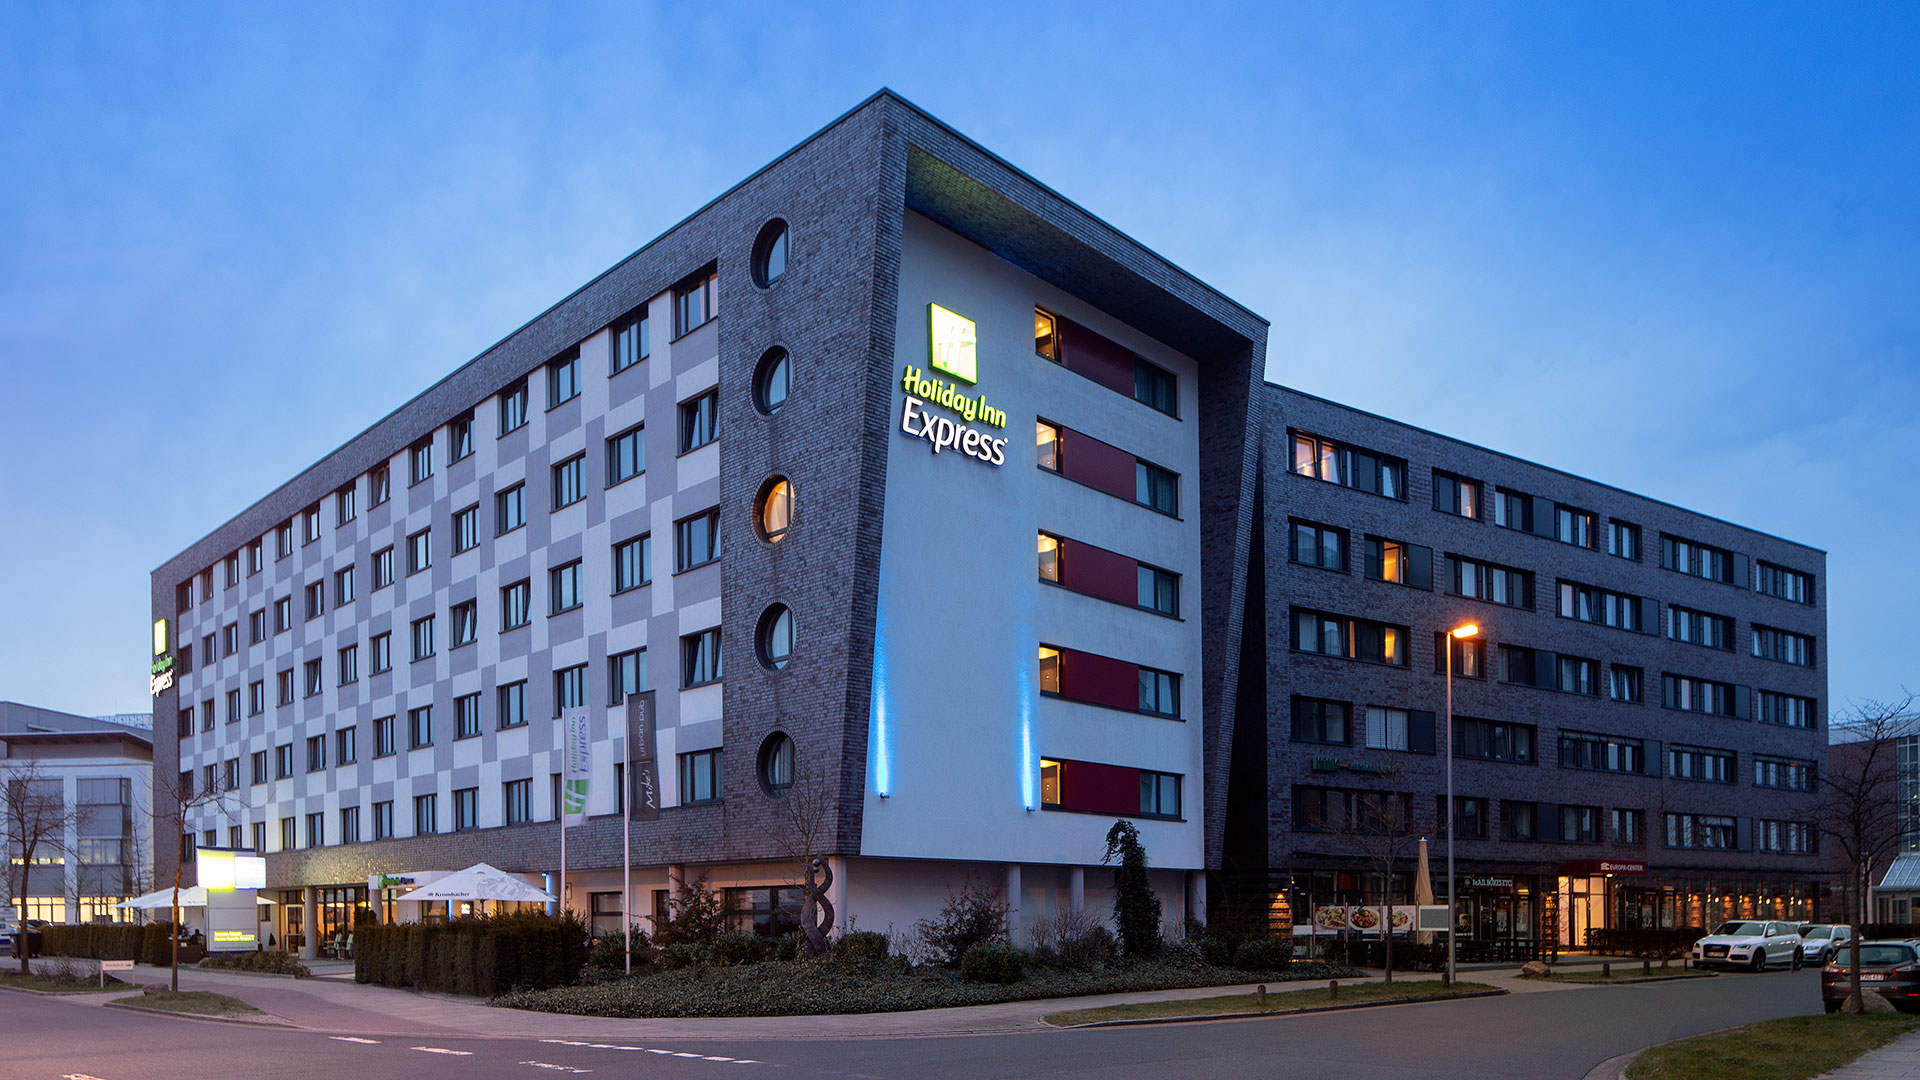 Exterior photo - 05 - Holiday Inn Express Bremen Airport